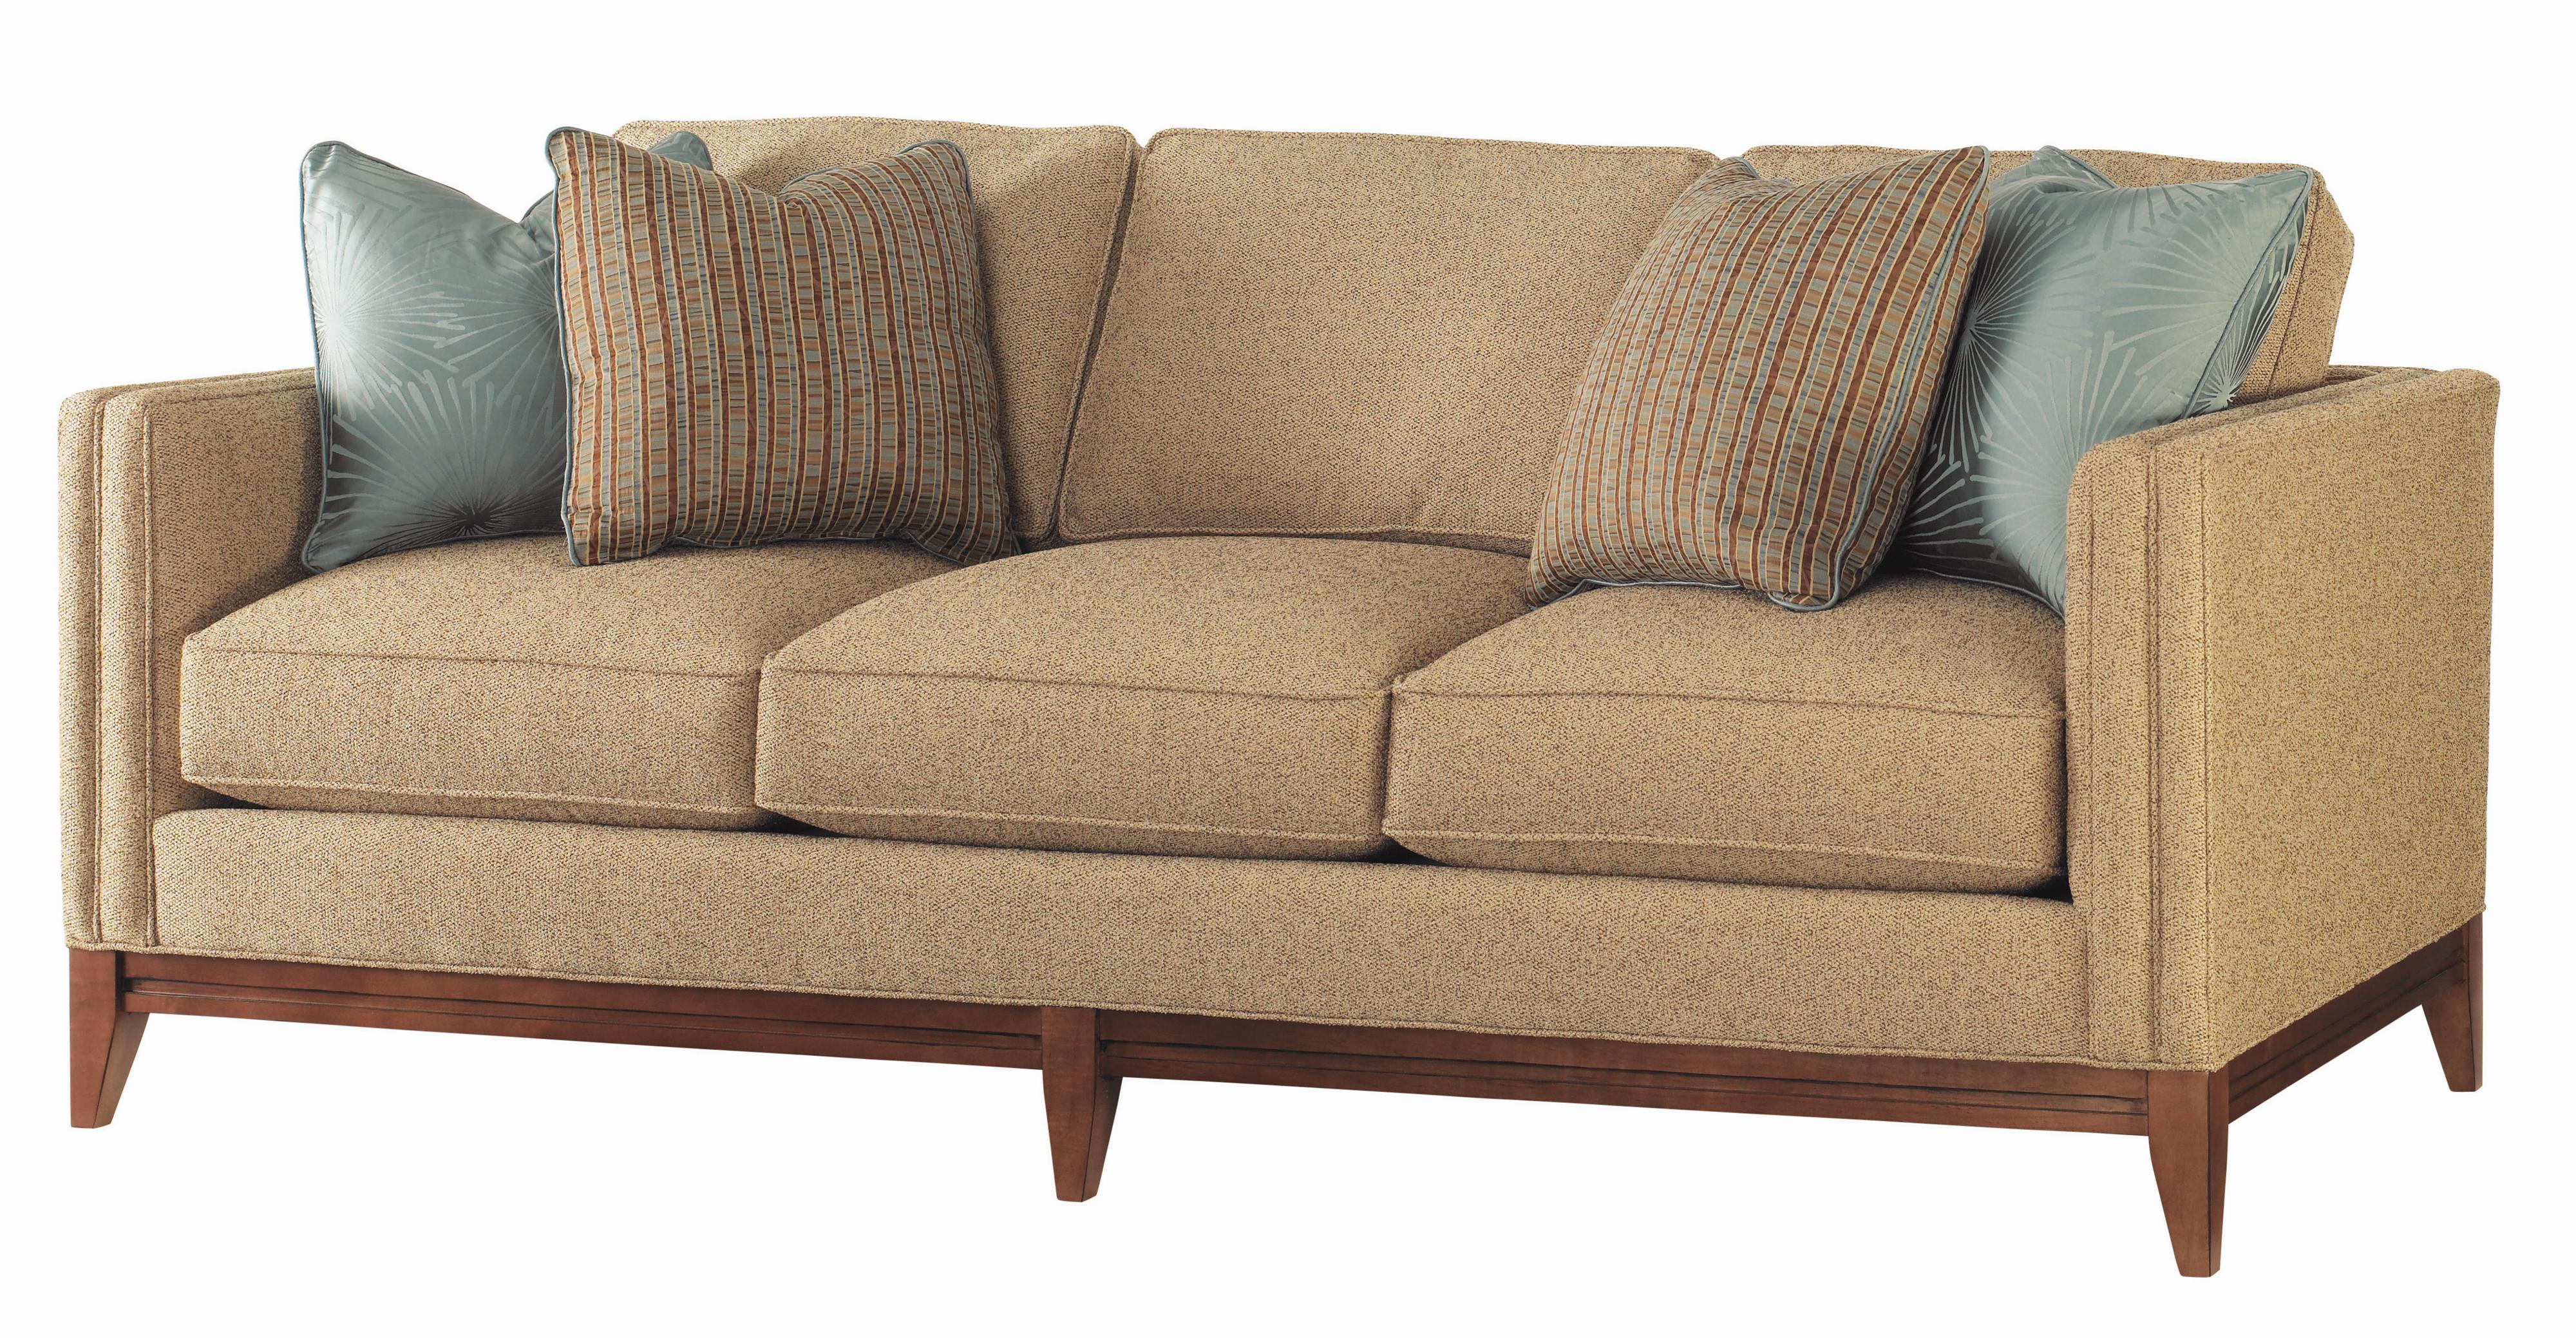 Tommy Bahama Home Ocean Club Ladera Sofa With Exposed Wood